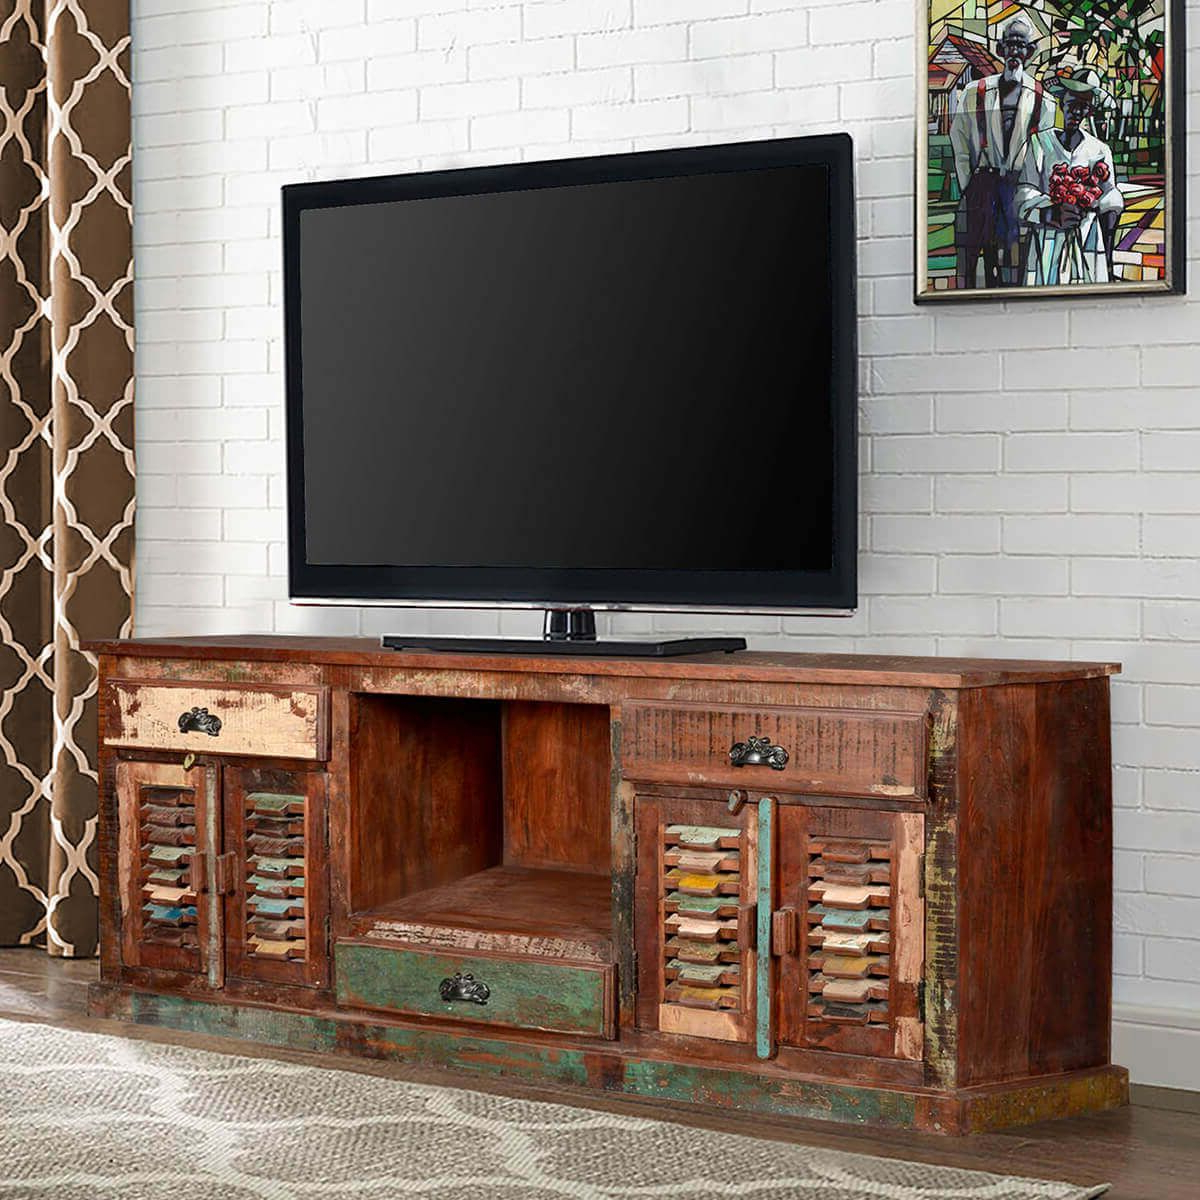 Rustic Reclaimed Wood Large Tv Stand Media Console Inside Rustic Grey Tv Stand Media Console Stands For Living Room Bedroom (View 7 of 20)